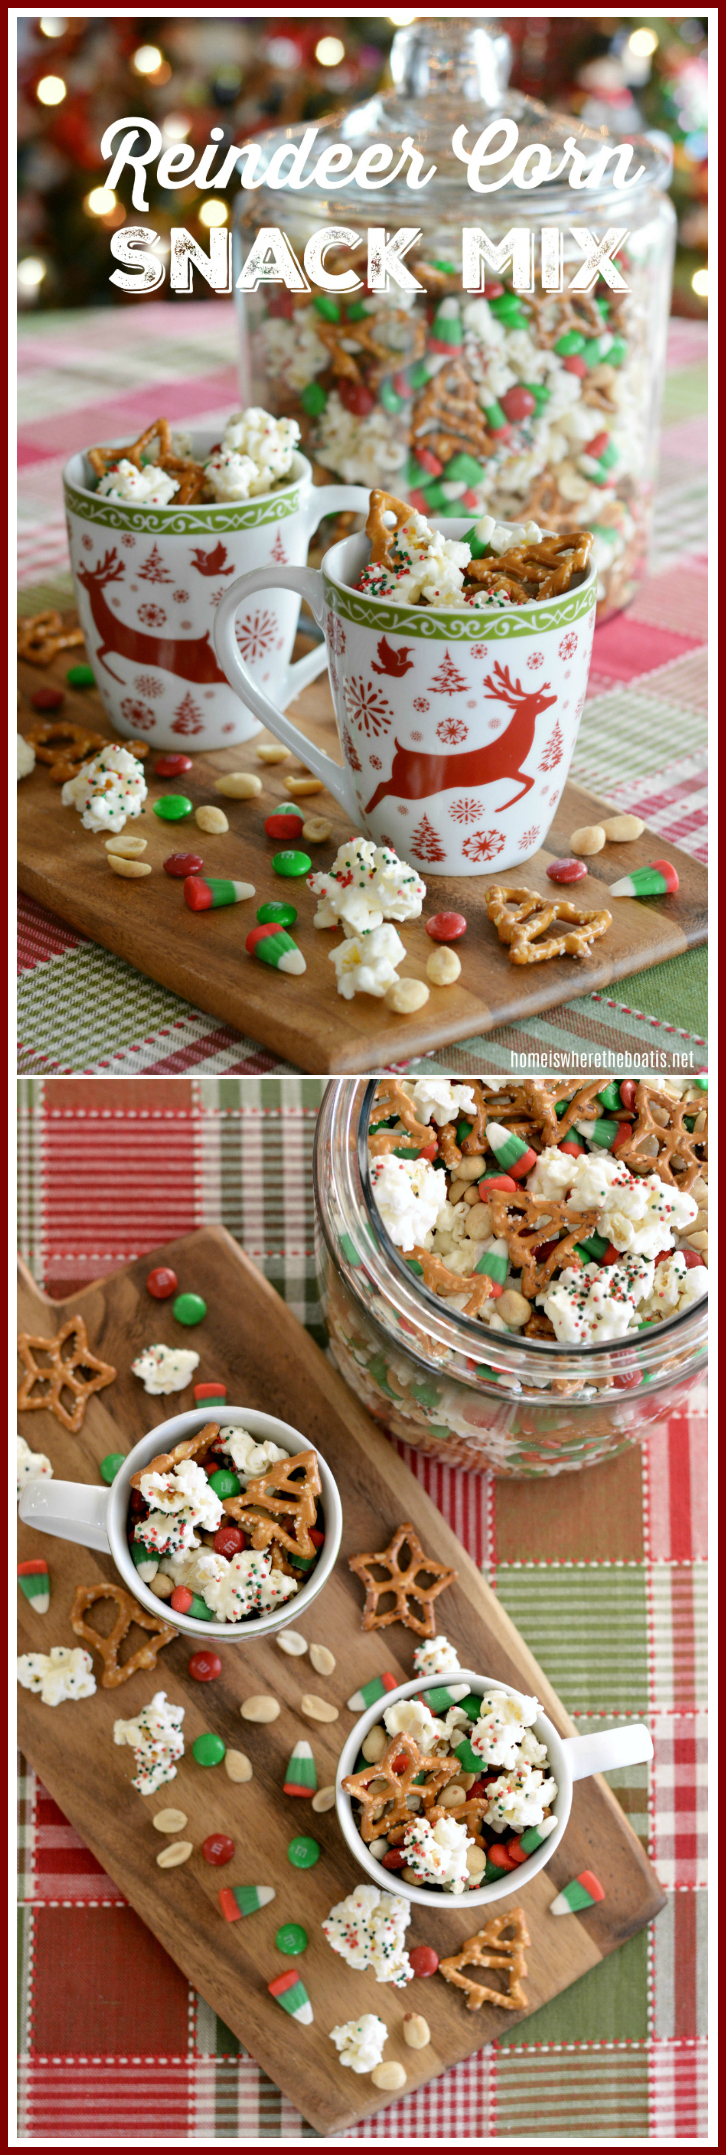 Reindeer Corn Snack Mix! An easy no-bake treat for holiday snacking or last minute food gift! | homeiswheretheboatis.net #nobake #foodgift #Christmas